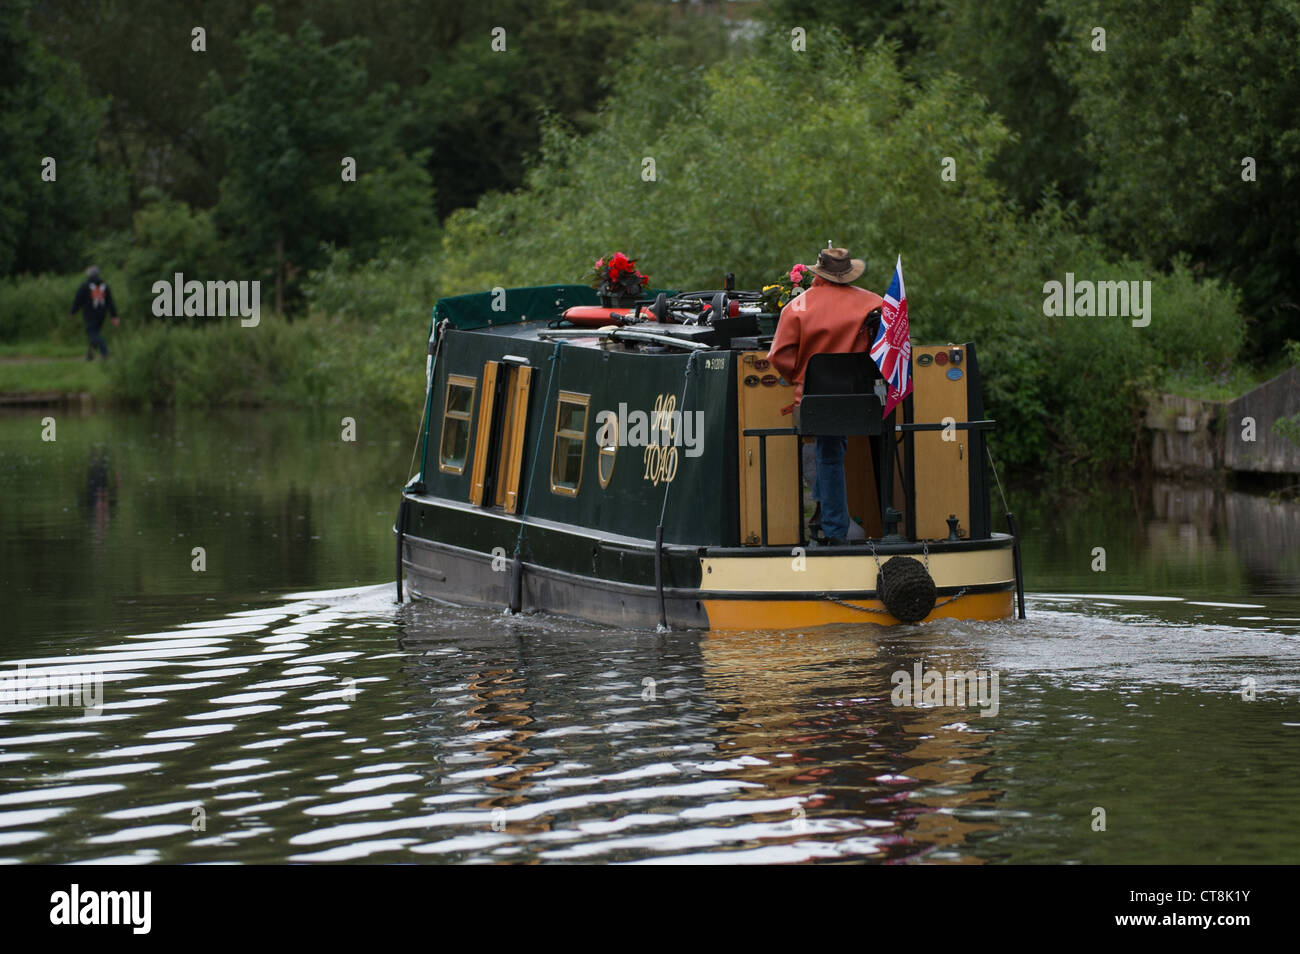 House boat on river - Stock Image